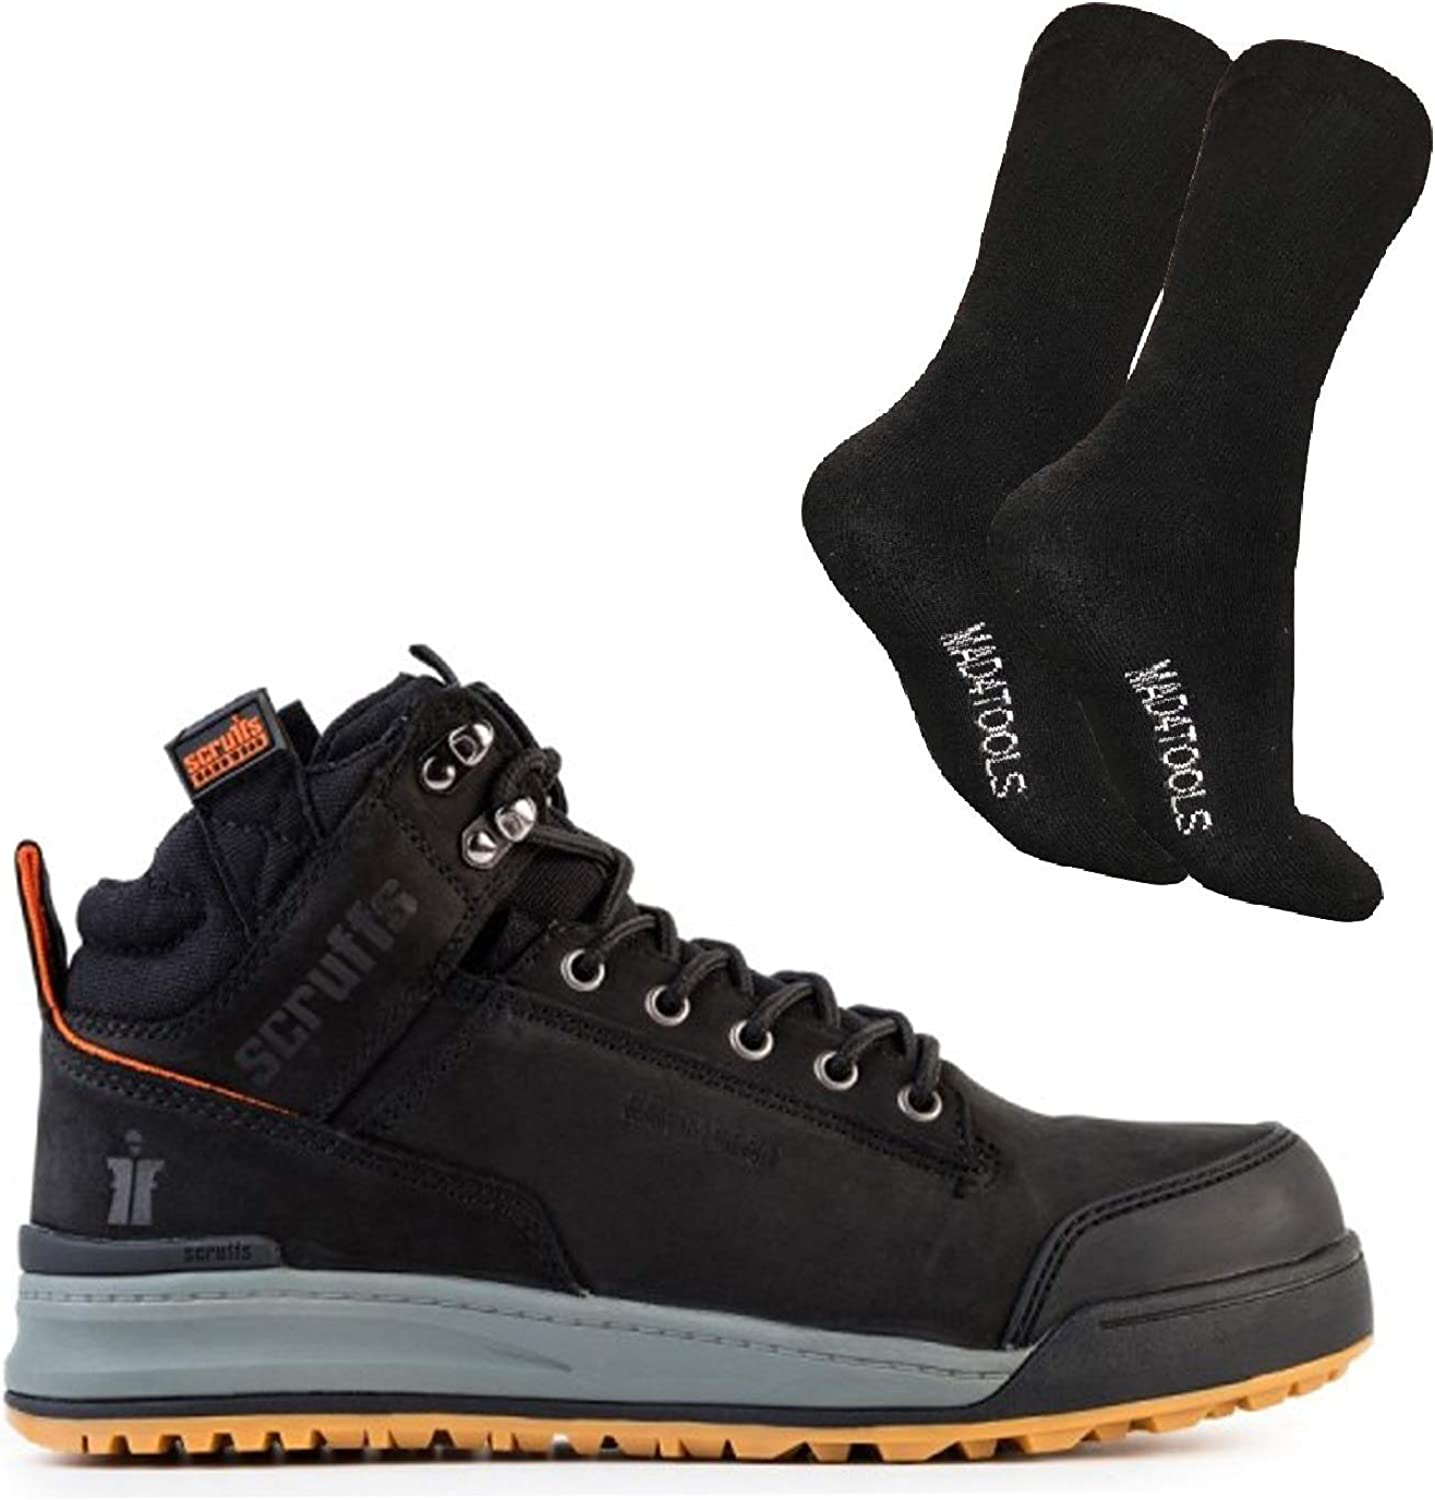 Scruffs Switchback Safety Boots and Boot Socks